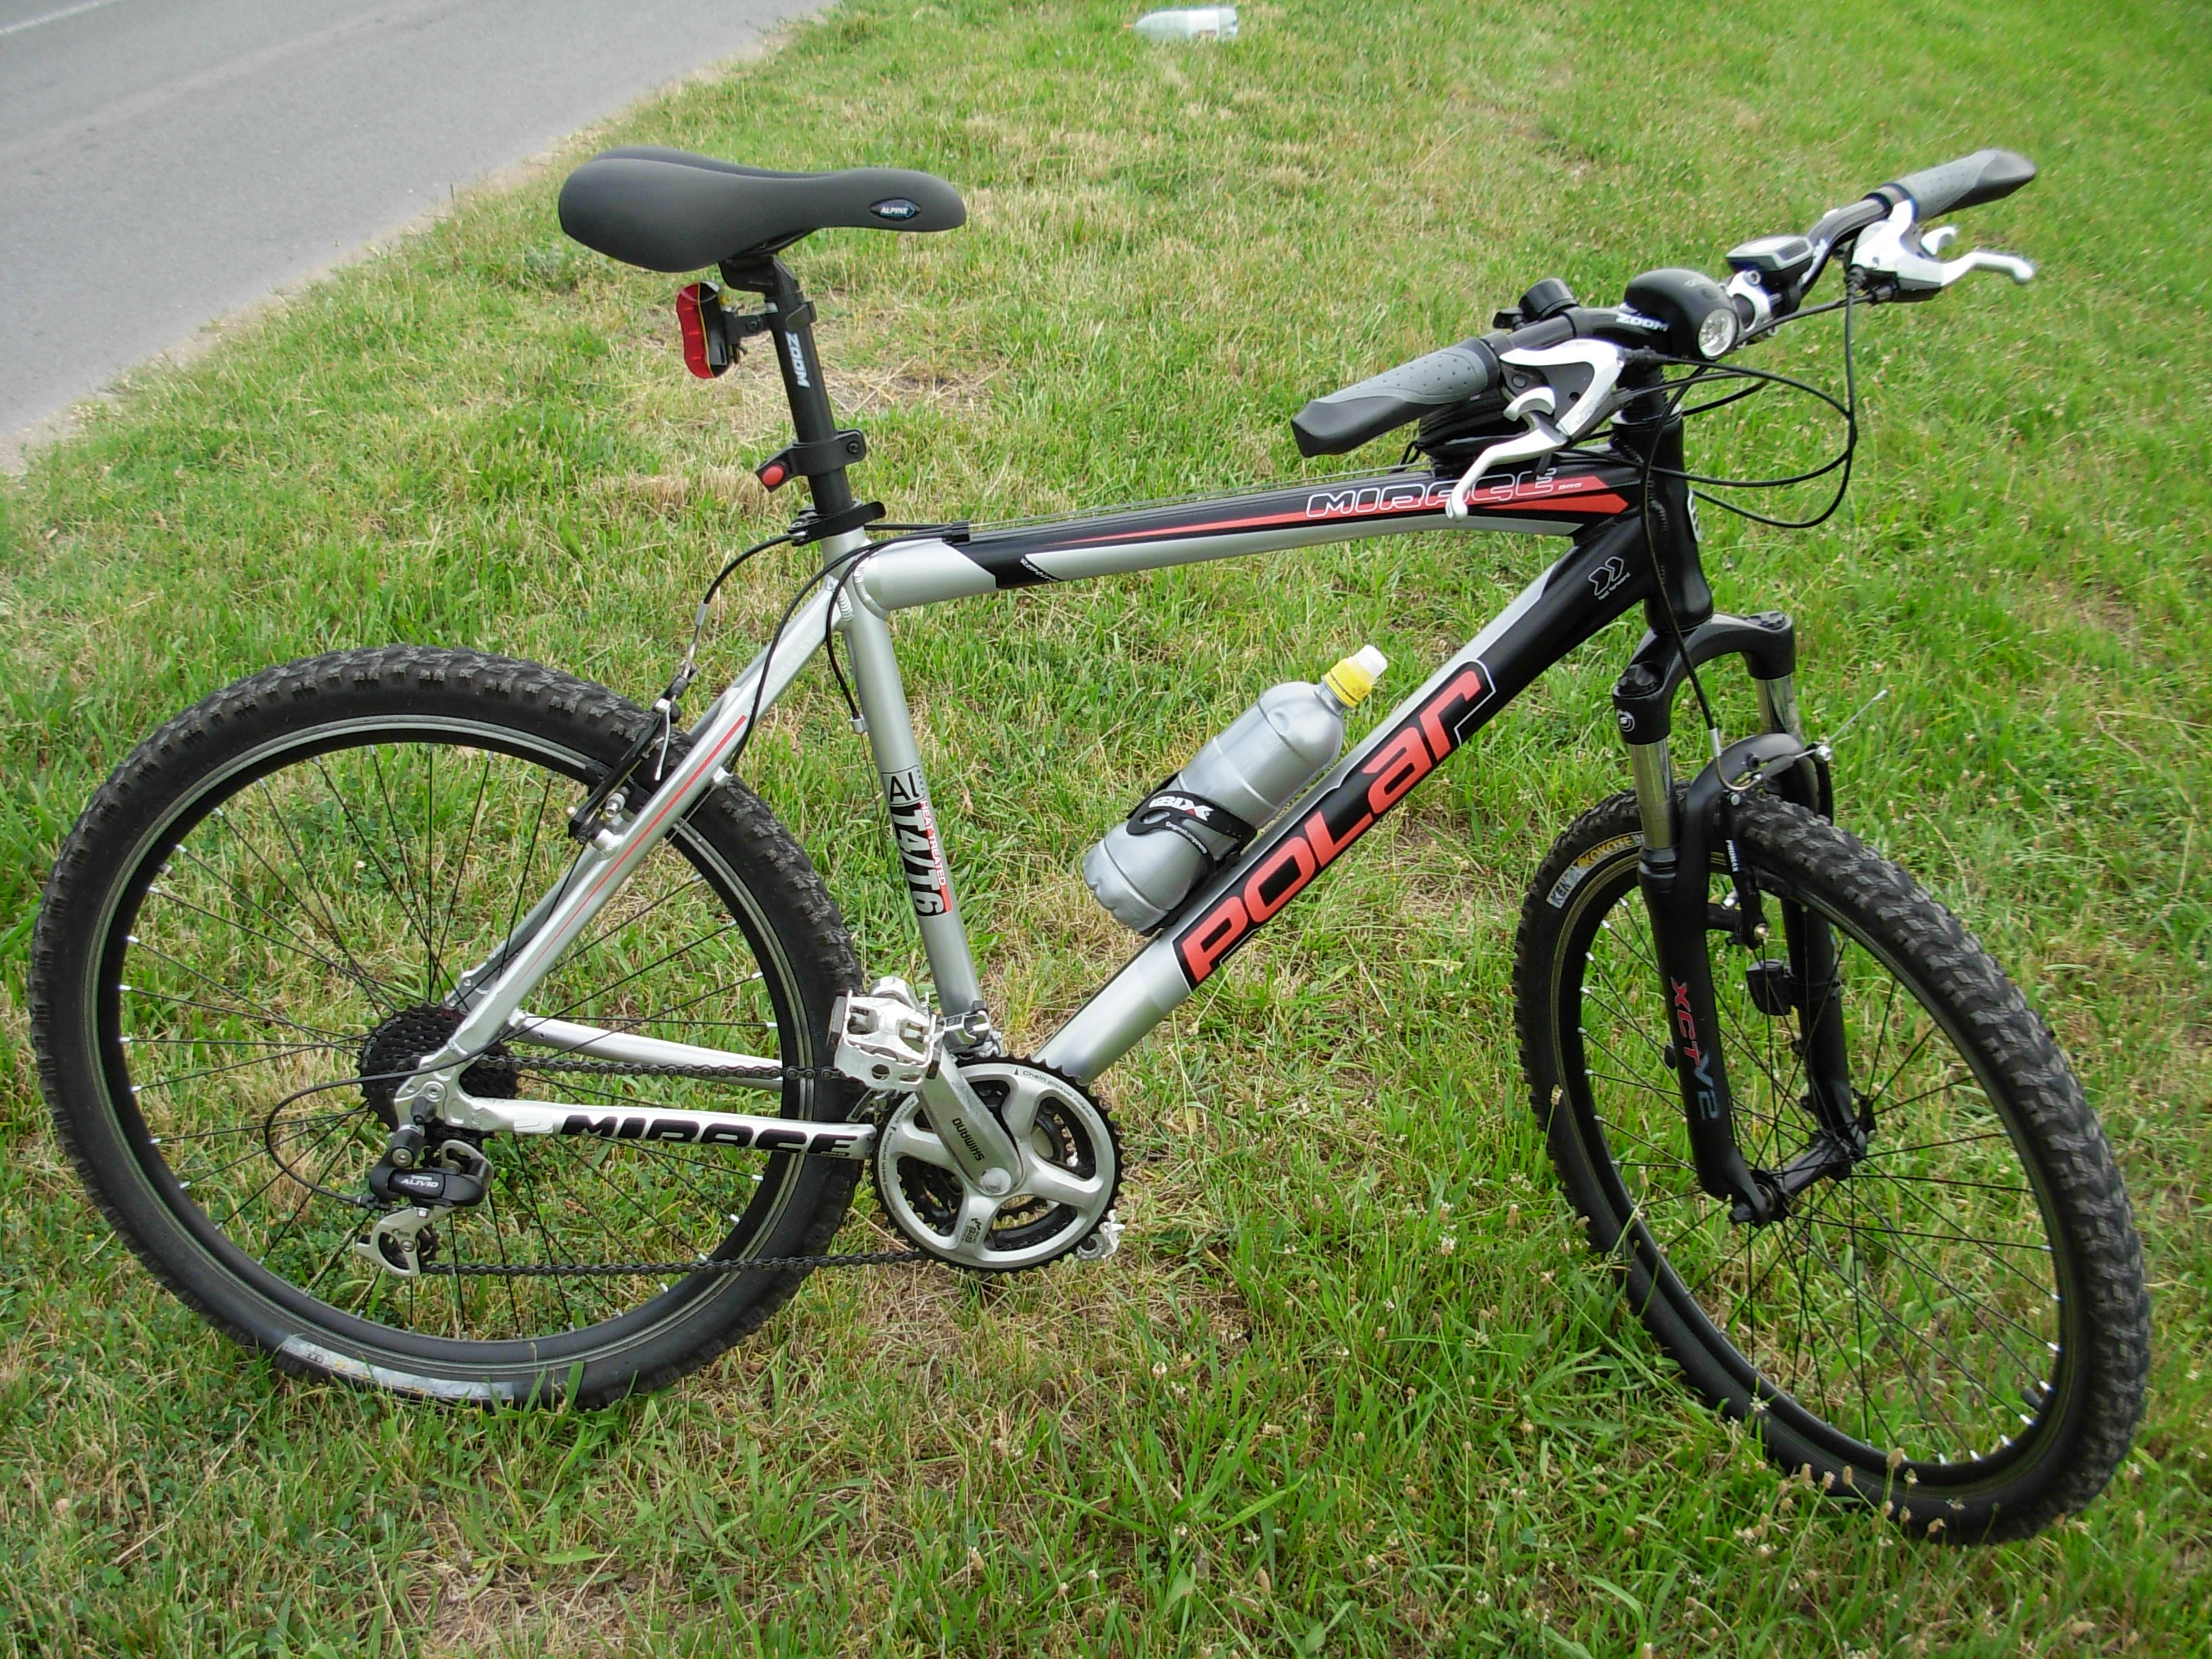 File:Polar MTB.JPG - Wikimedia Commons